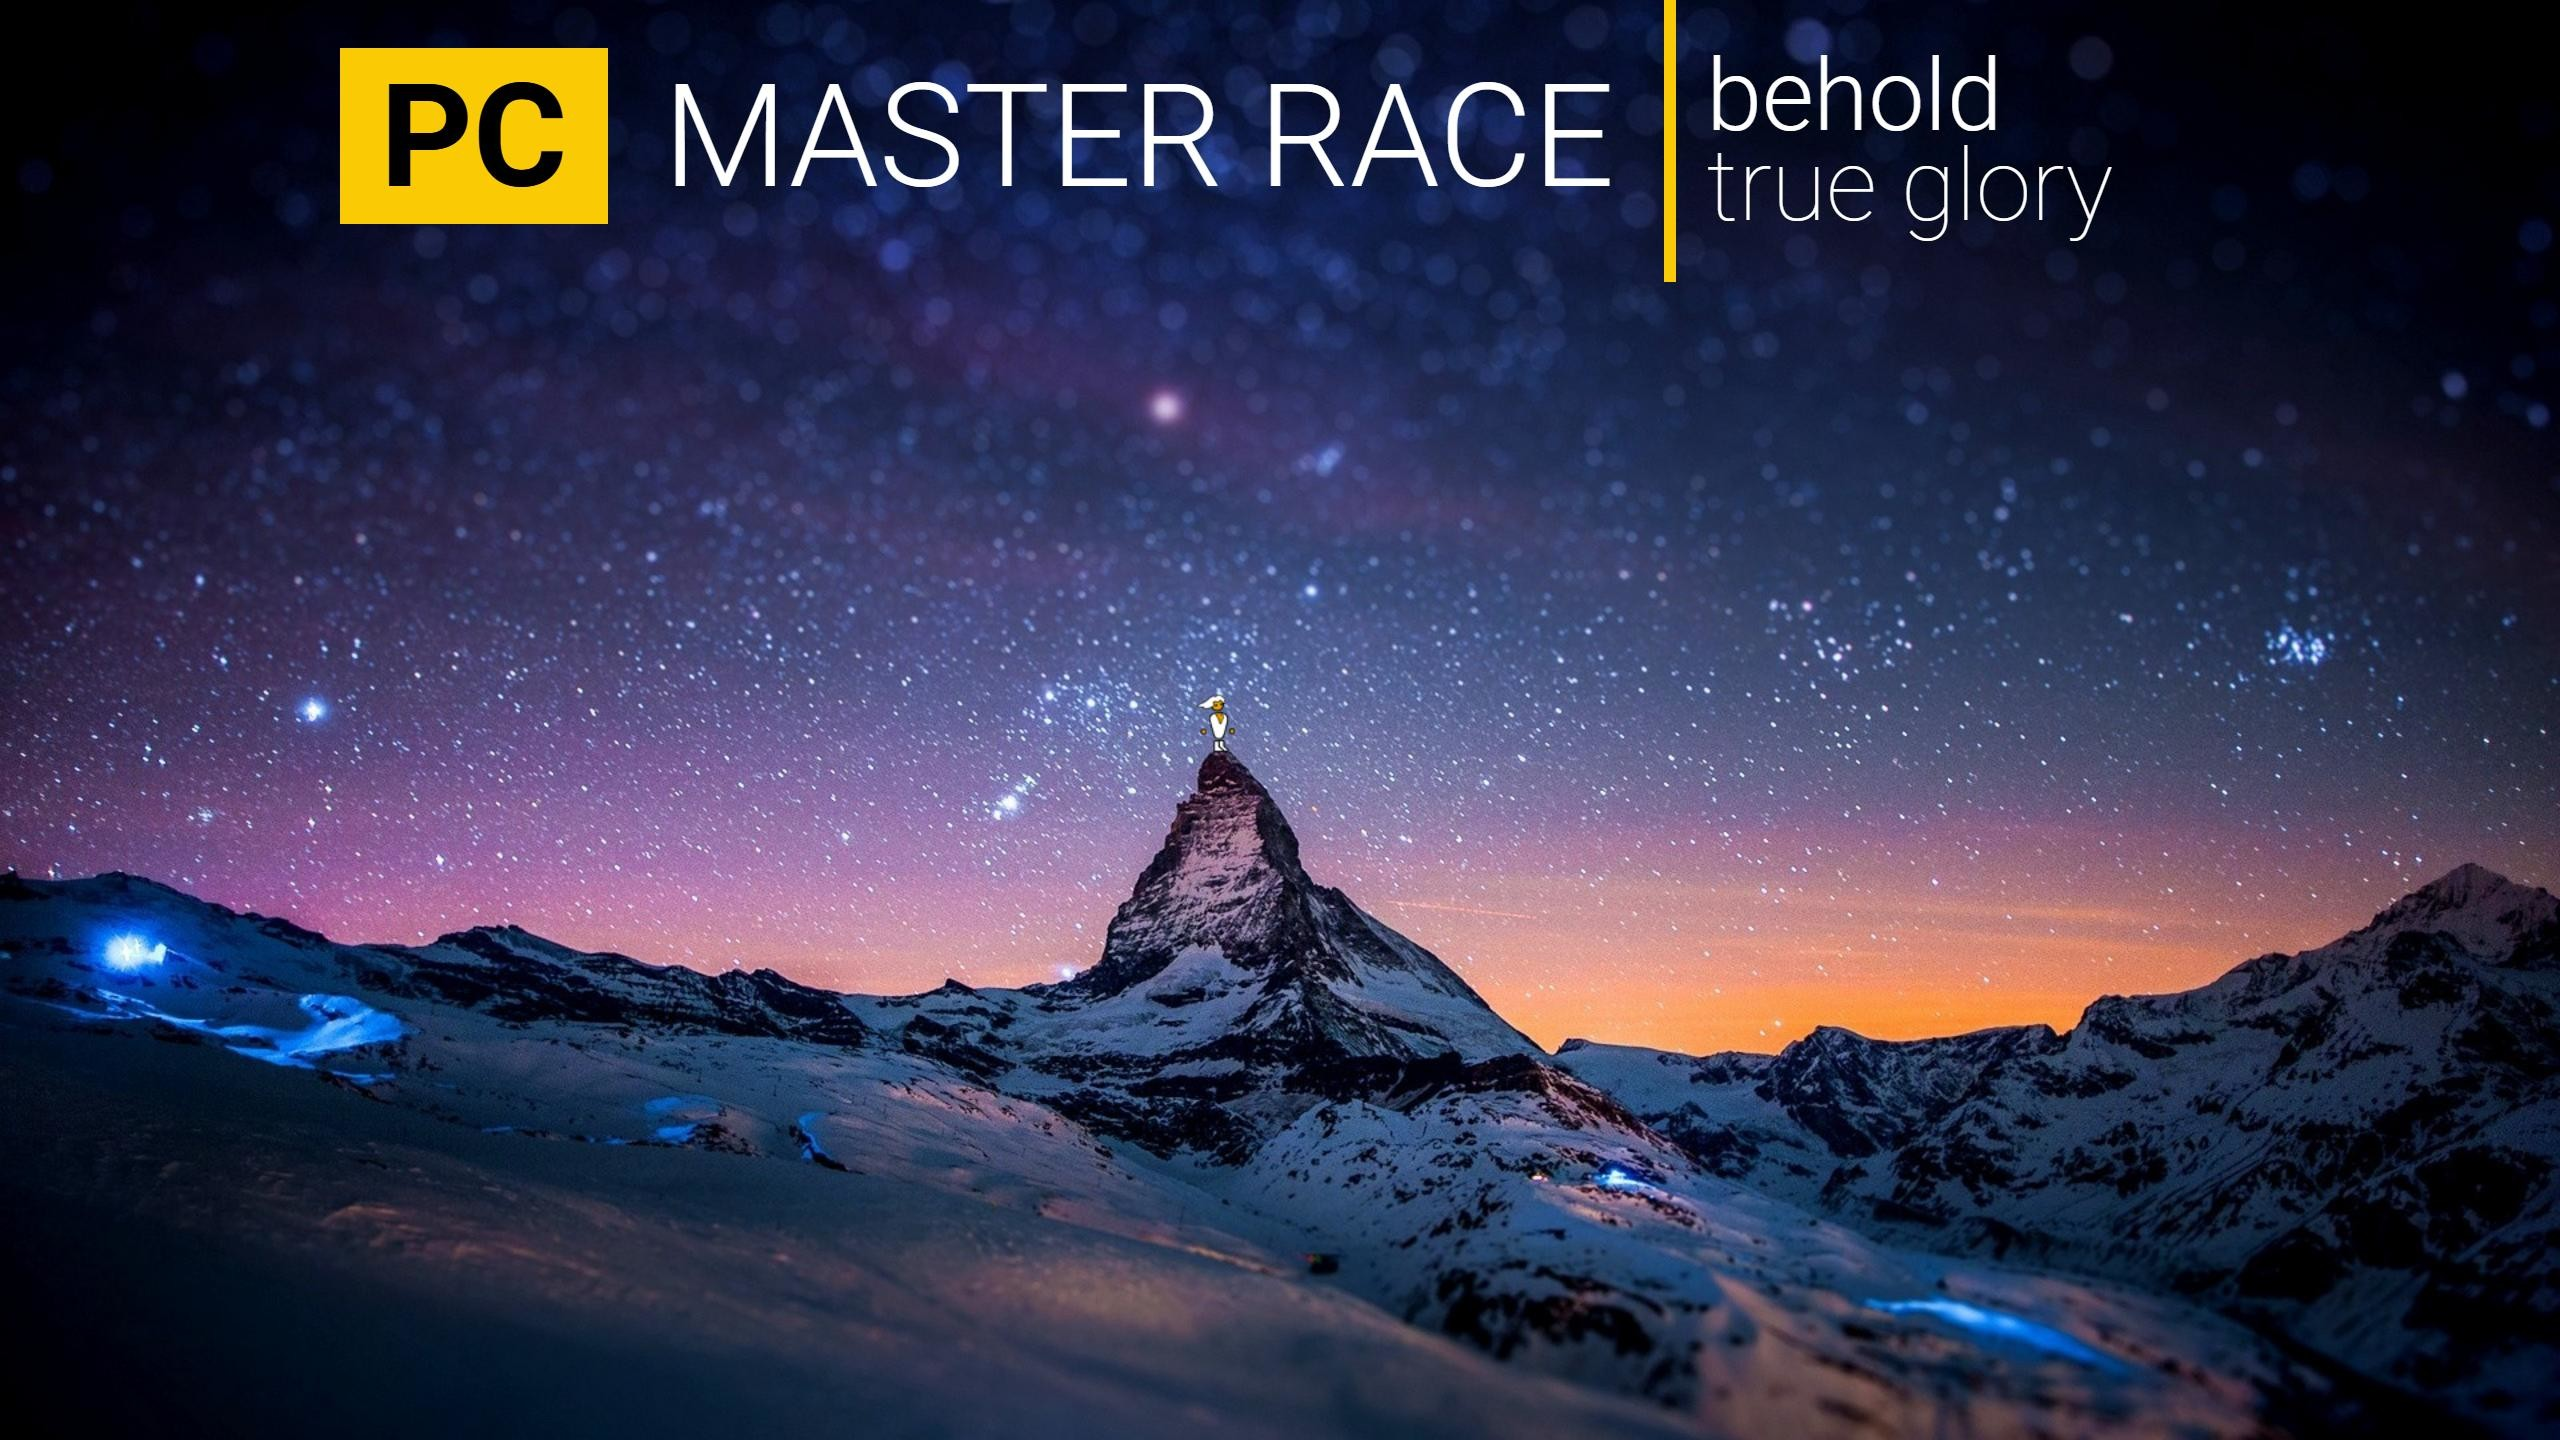 JustMasterRaceThingsGlorious PC Master Race 1440p Wallpaper …